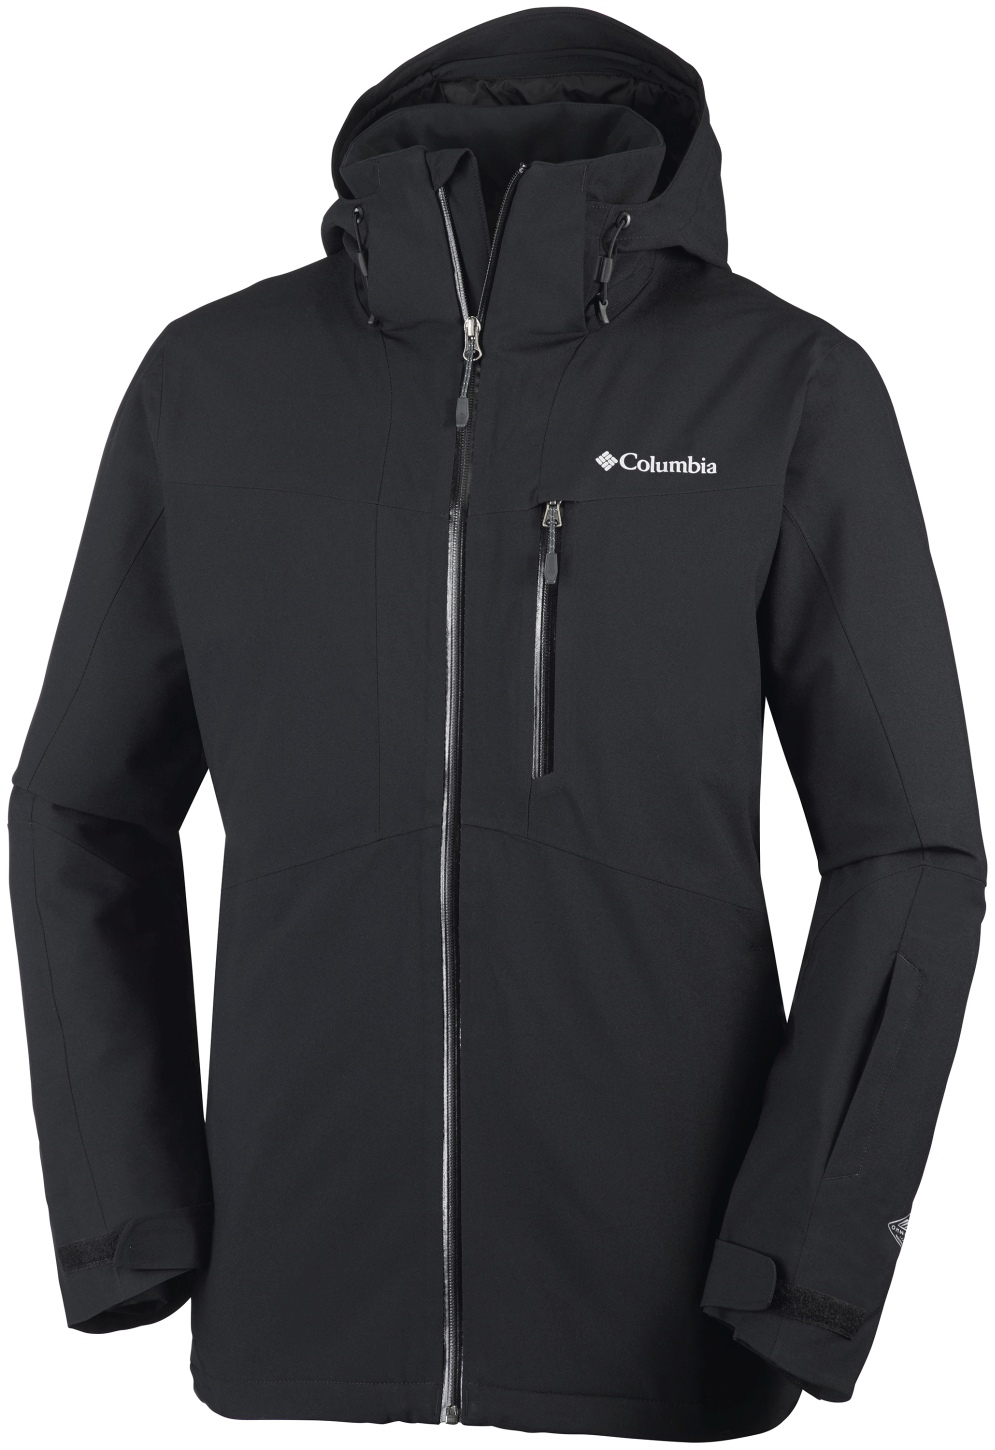 Columbia Men's Wild Card Ski Jacket Black-30